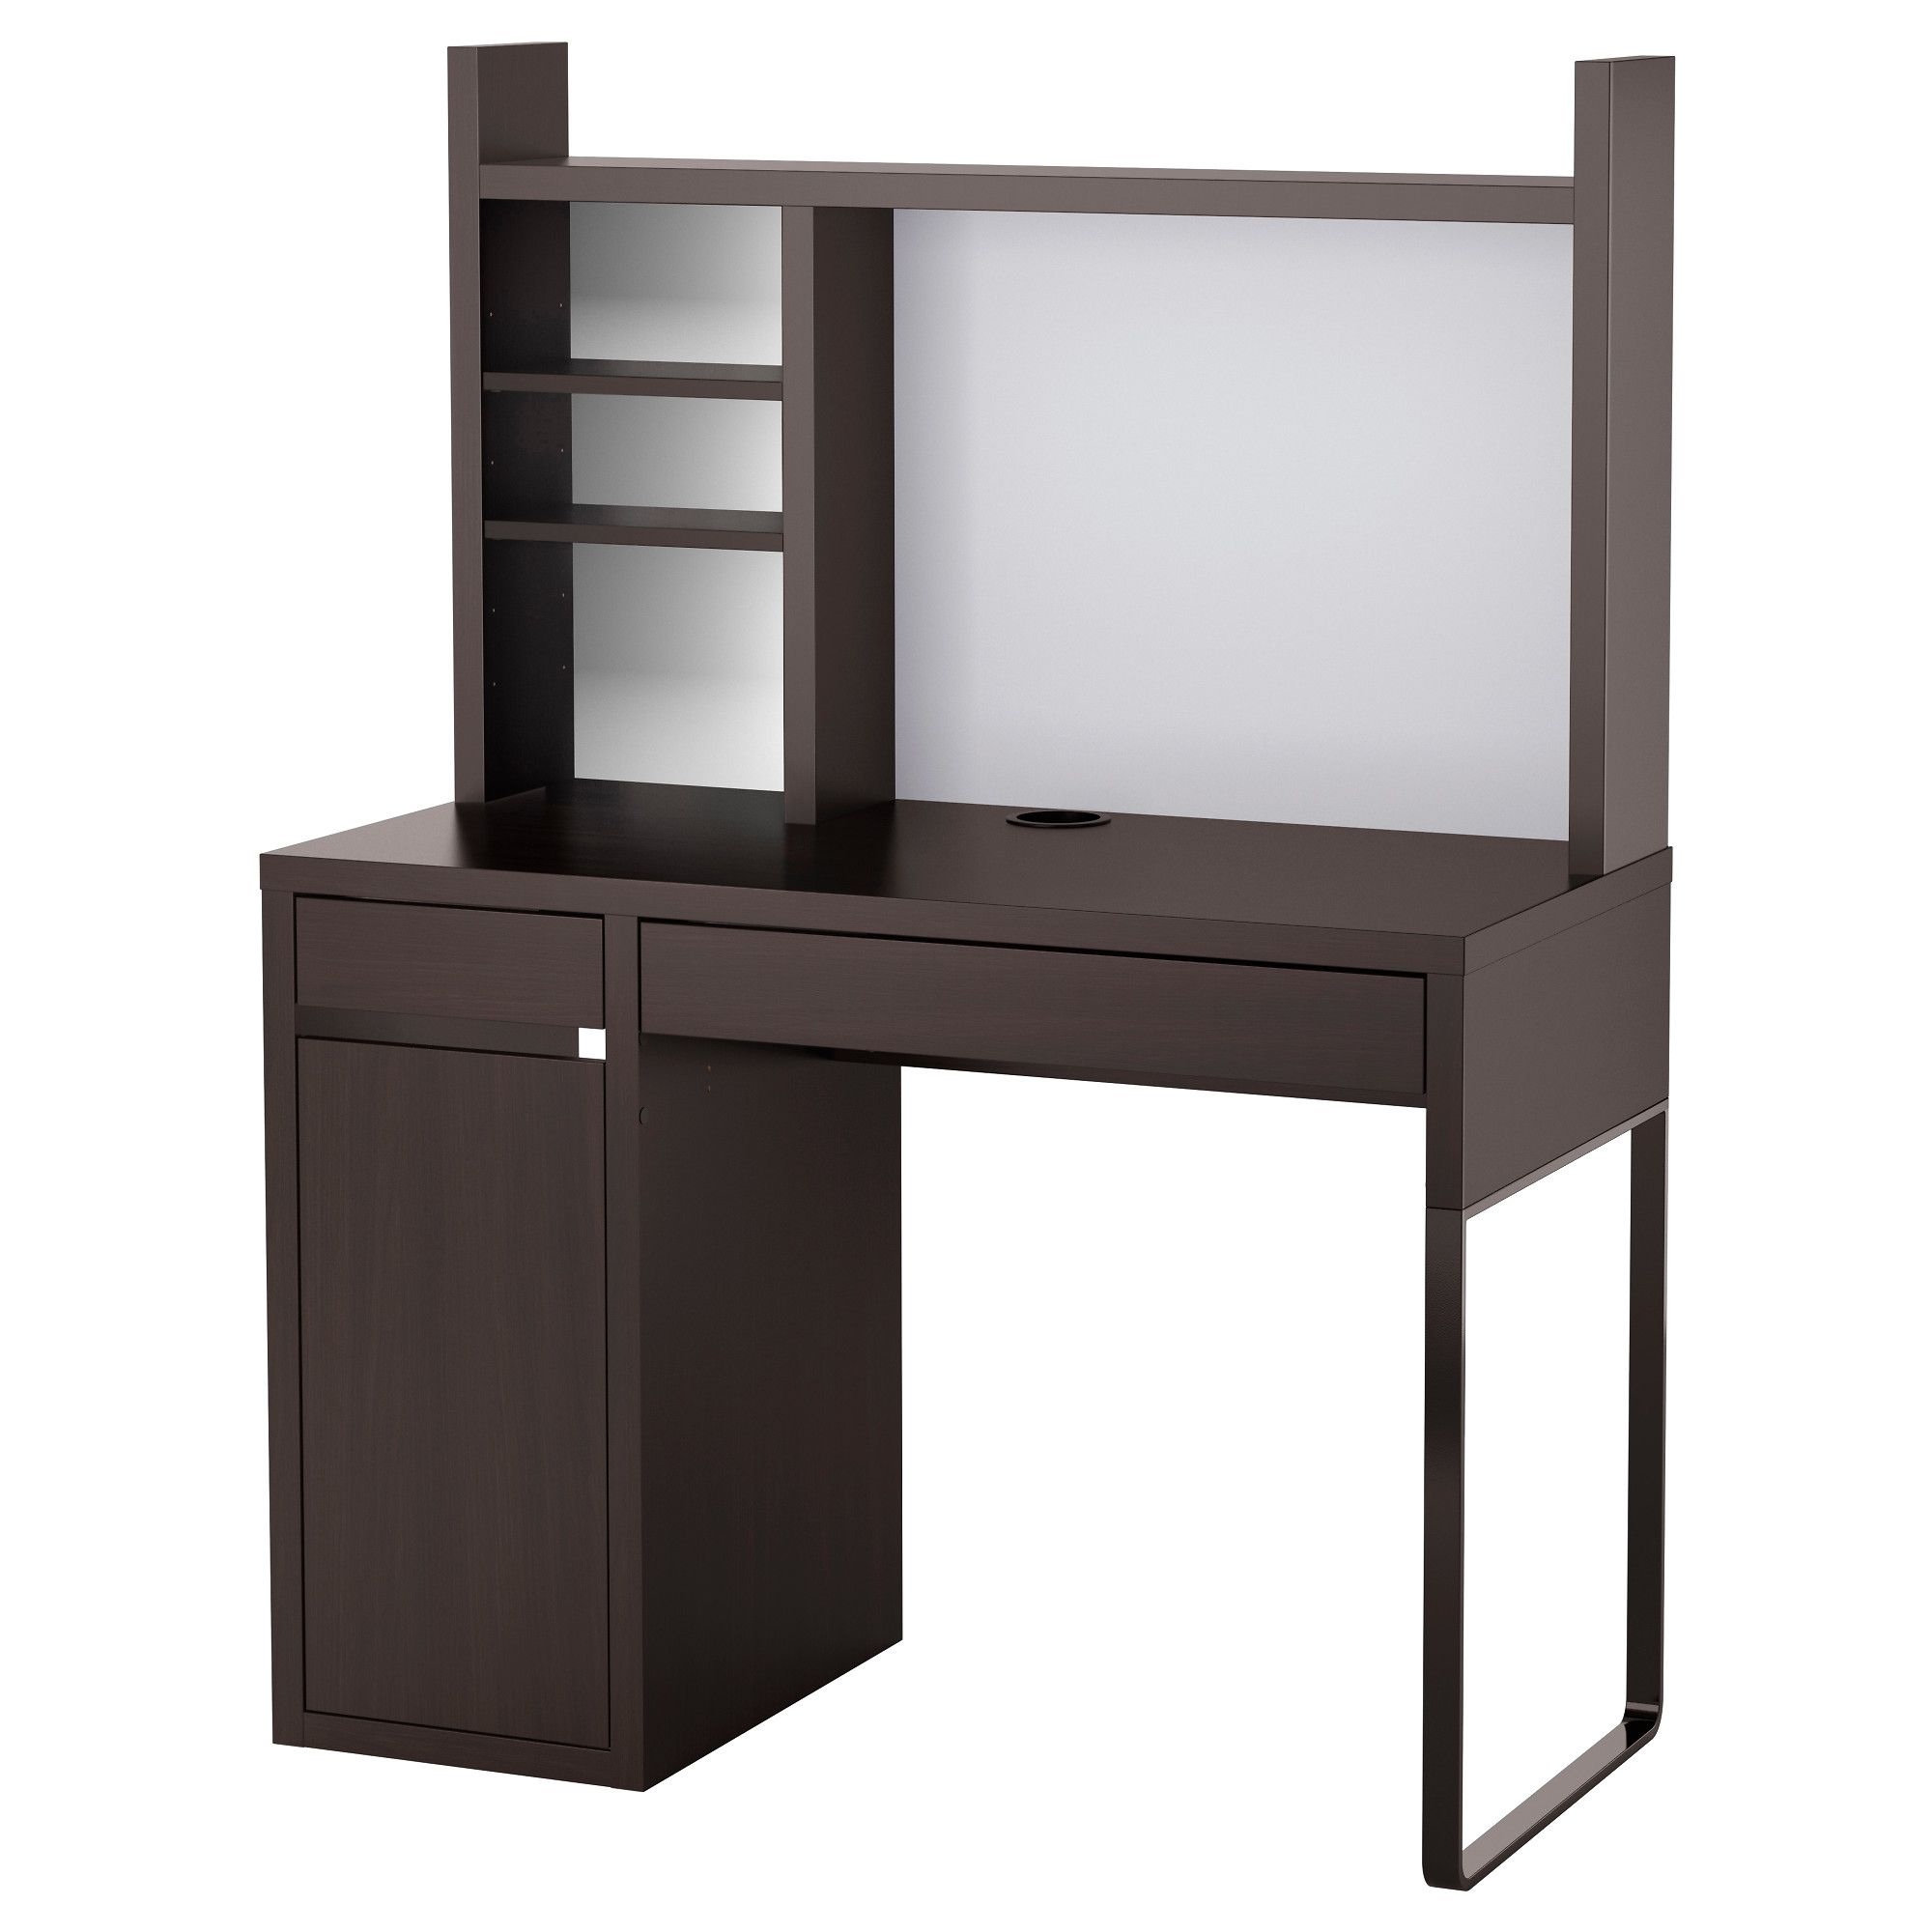 Micke Desk Black Brown 41 3 8x19 5 8 Order Today Ikea Micke Desk Ikea Micke Corner Workstation